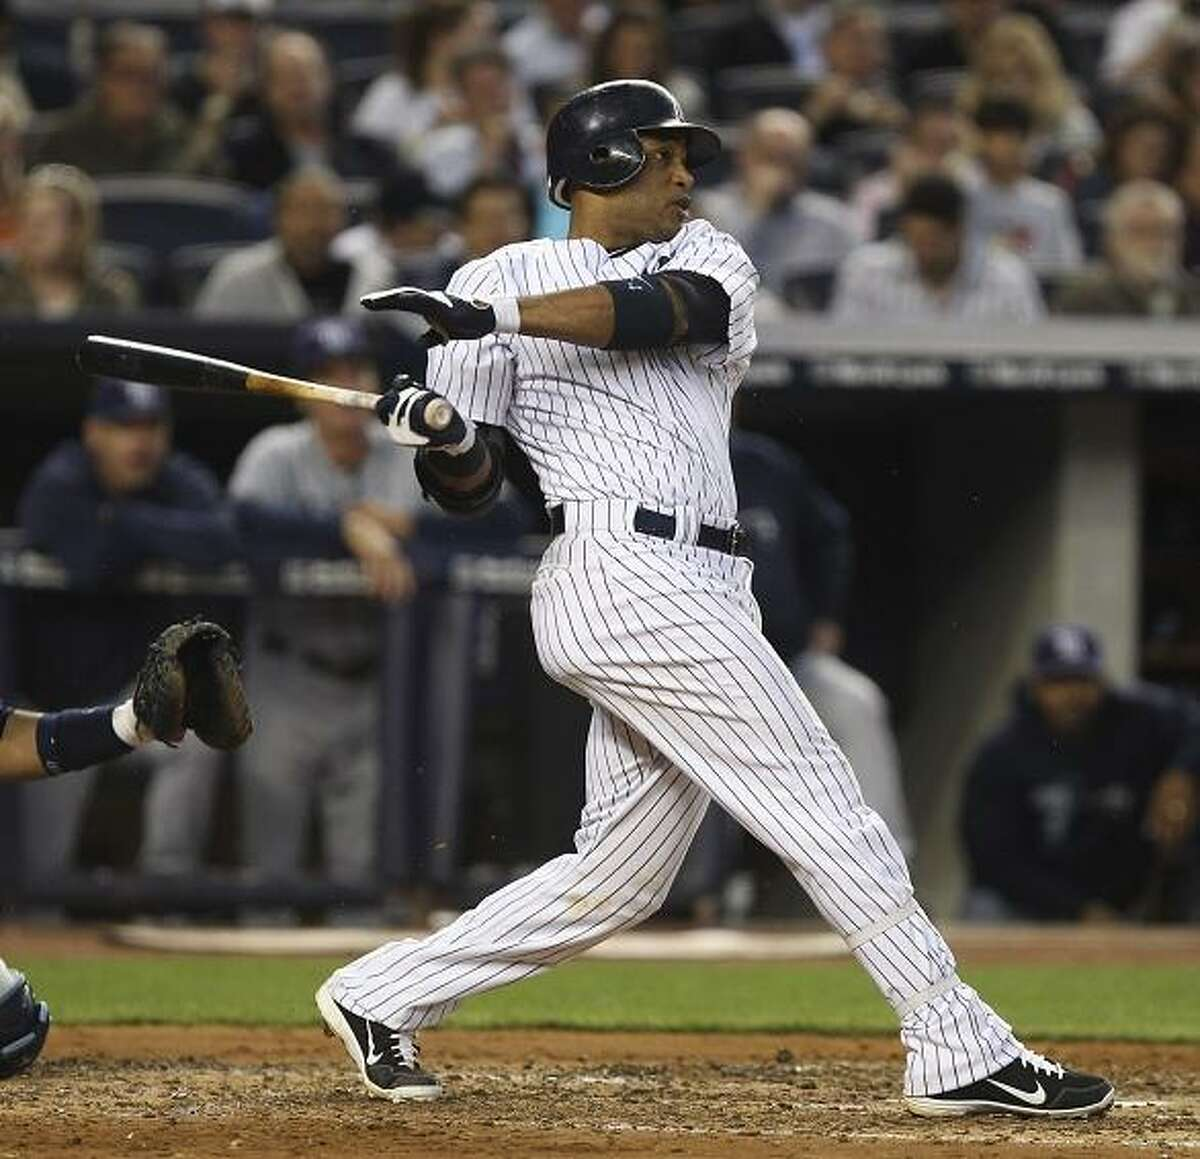 New York Yankees' Robinson Cano follows through on a solo home run during the fourth inning of a baseball game against the Tampa Bay Rays at Yankee Stadium in New York, Wednesday, June 6, 2012. (AP Photo/Seth Wenig)